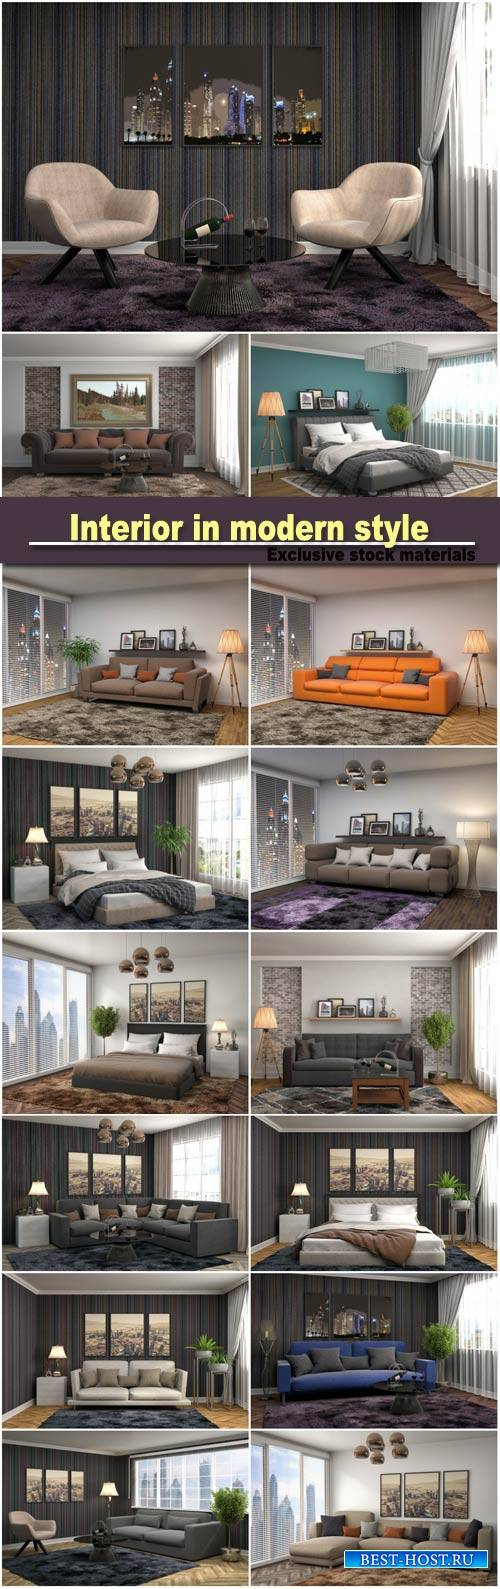 Interior in modern style, bedroom